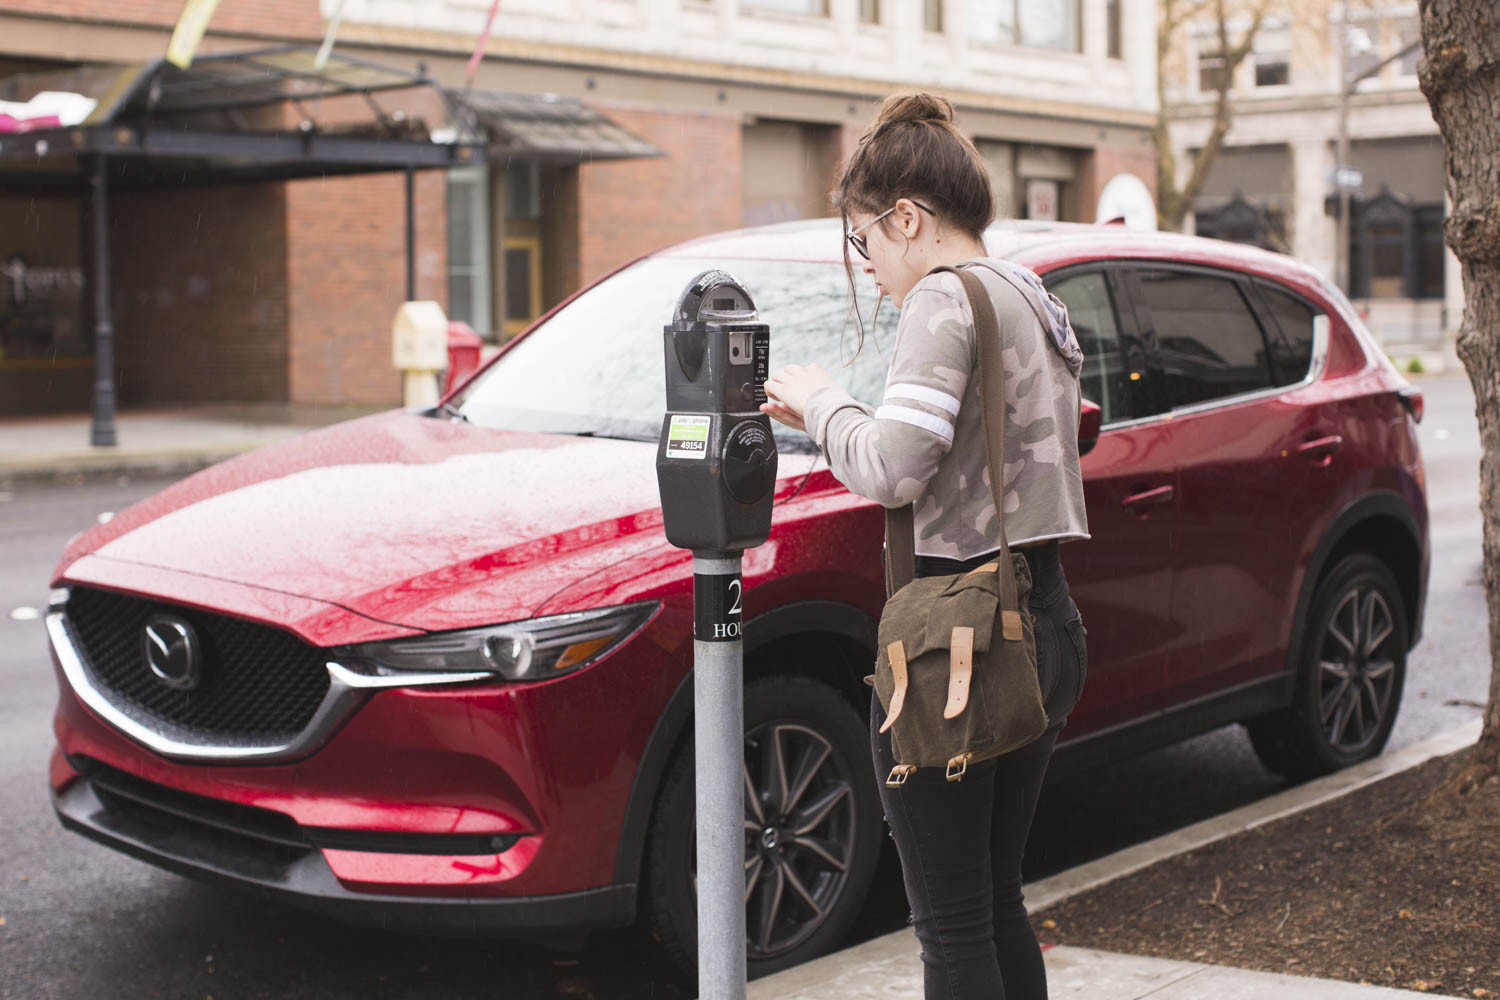 The Mazda CX-5 is perfect for driving around town.